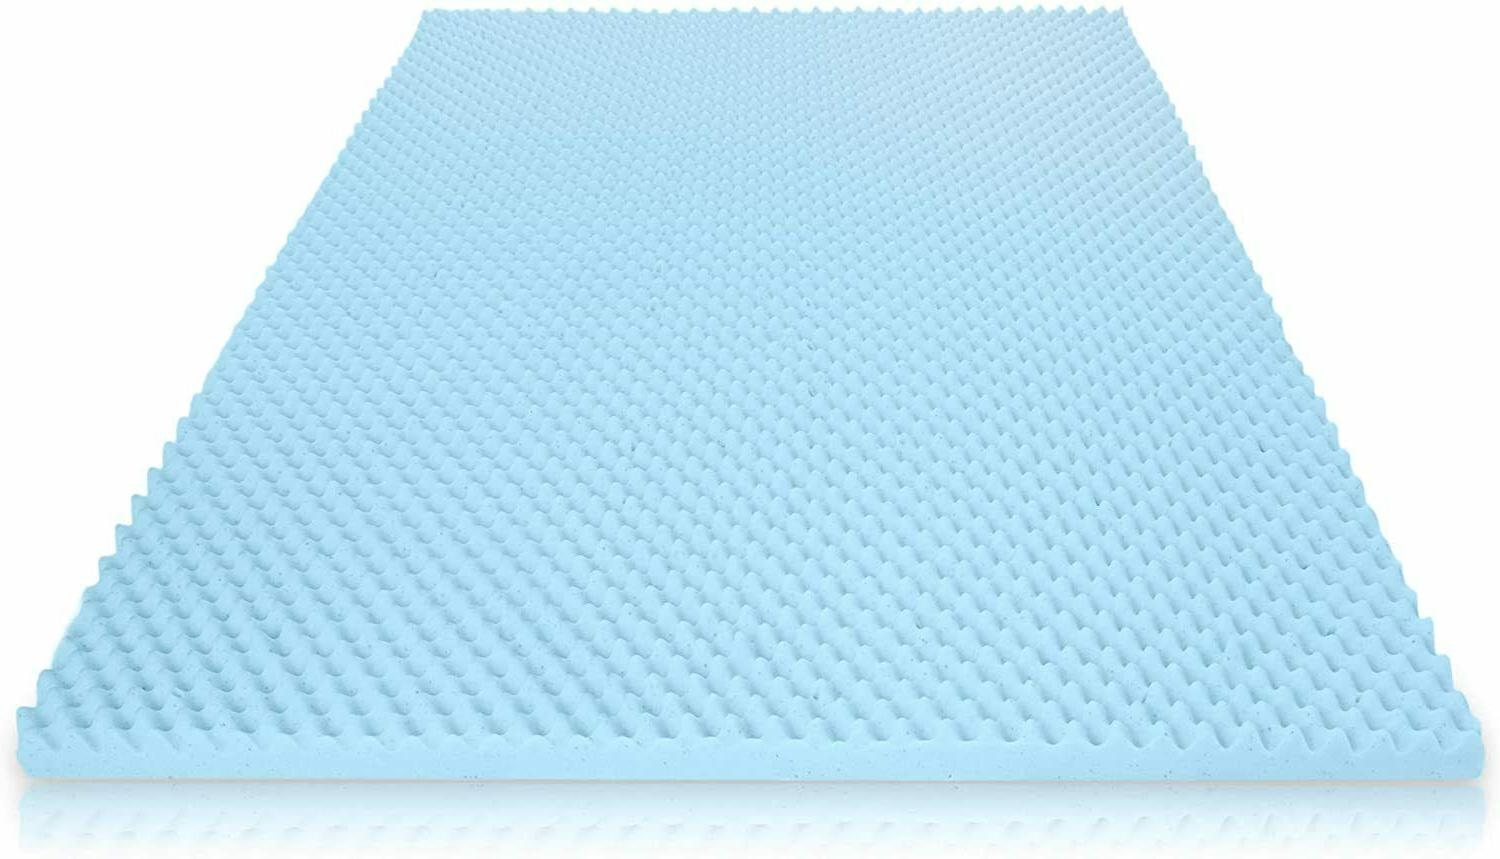 Mattress Topper Memory Foam Gel Infused Bed Pad Egg Crate Pr